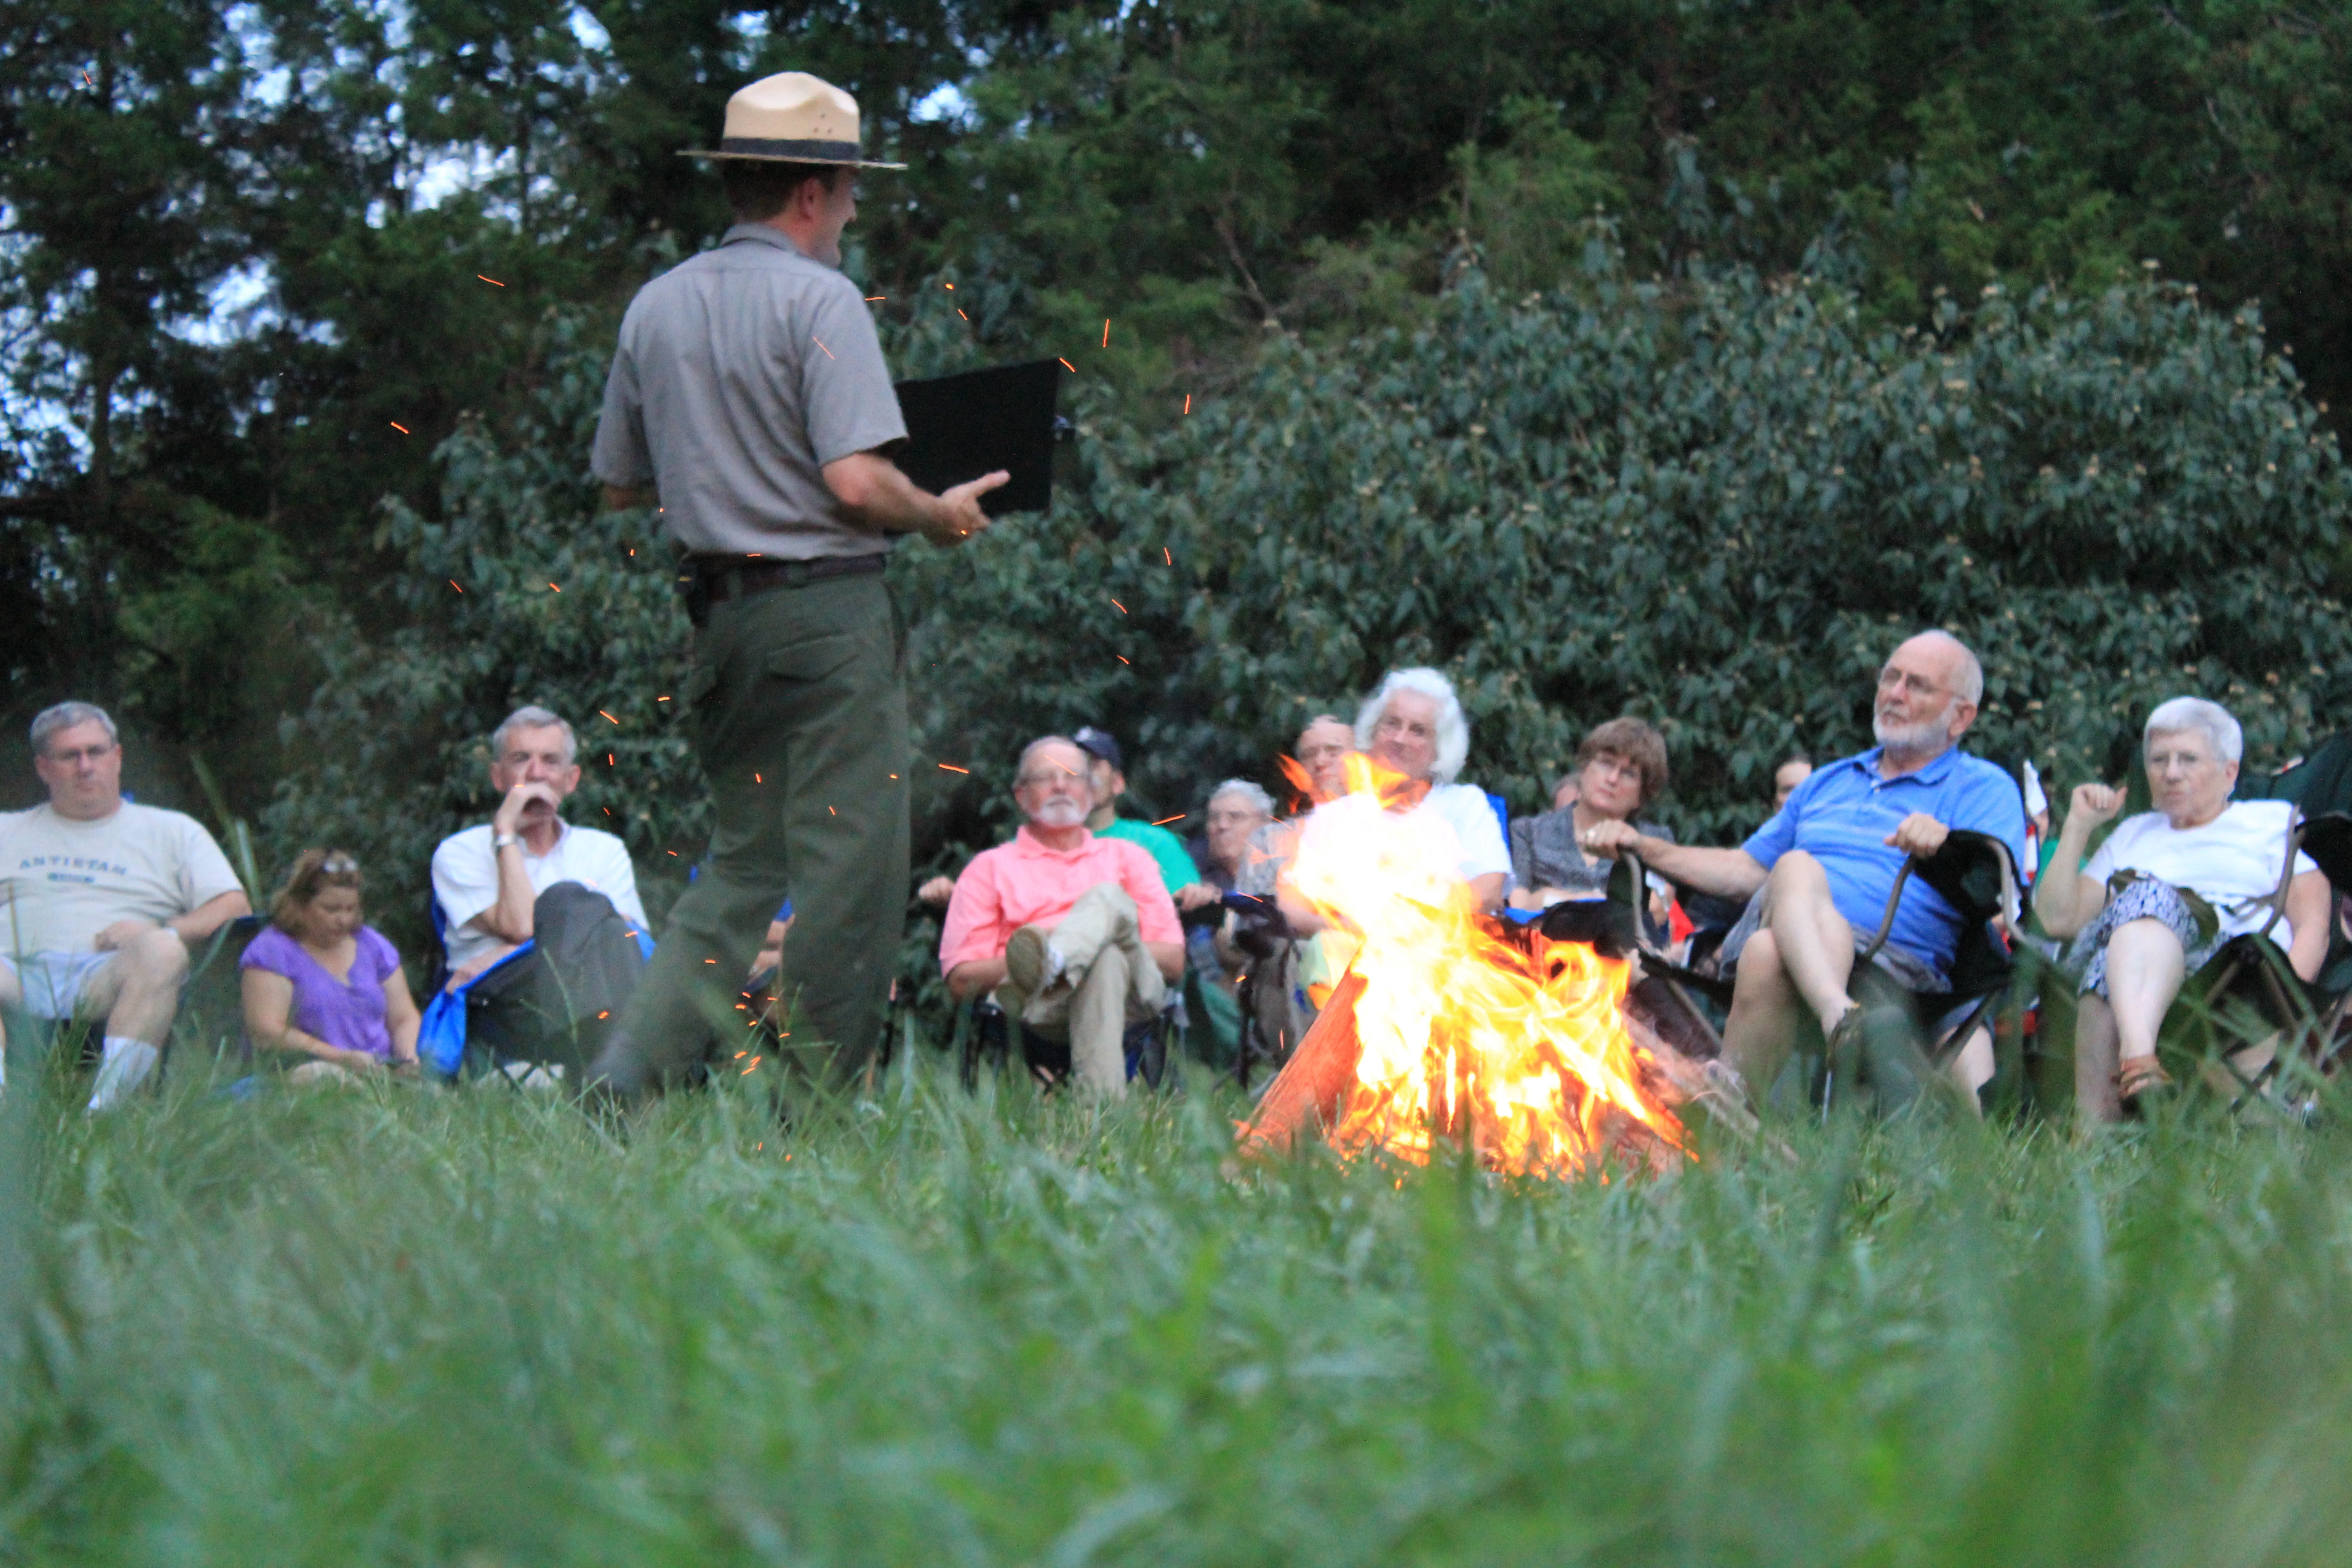 Ranger talks next to a blazing campfire with audience in the background